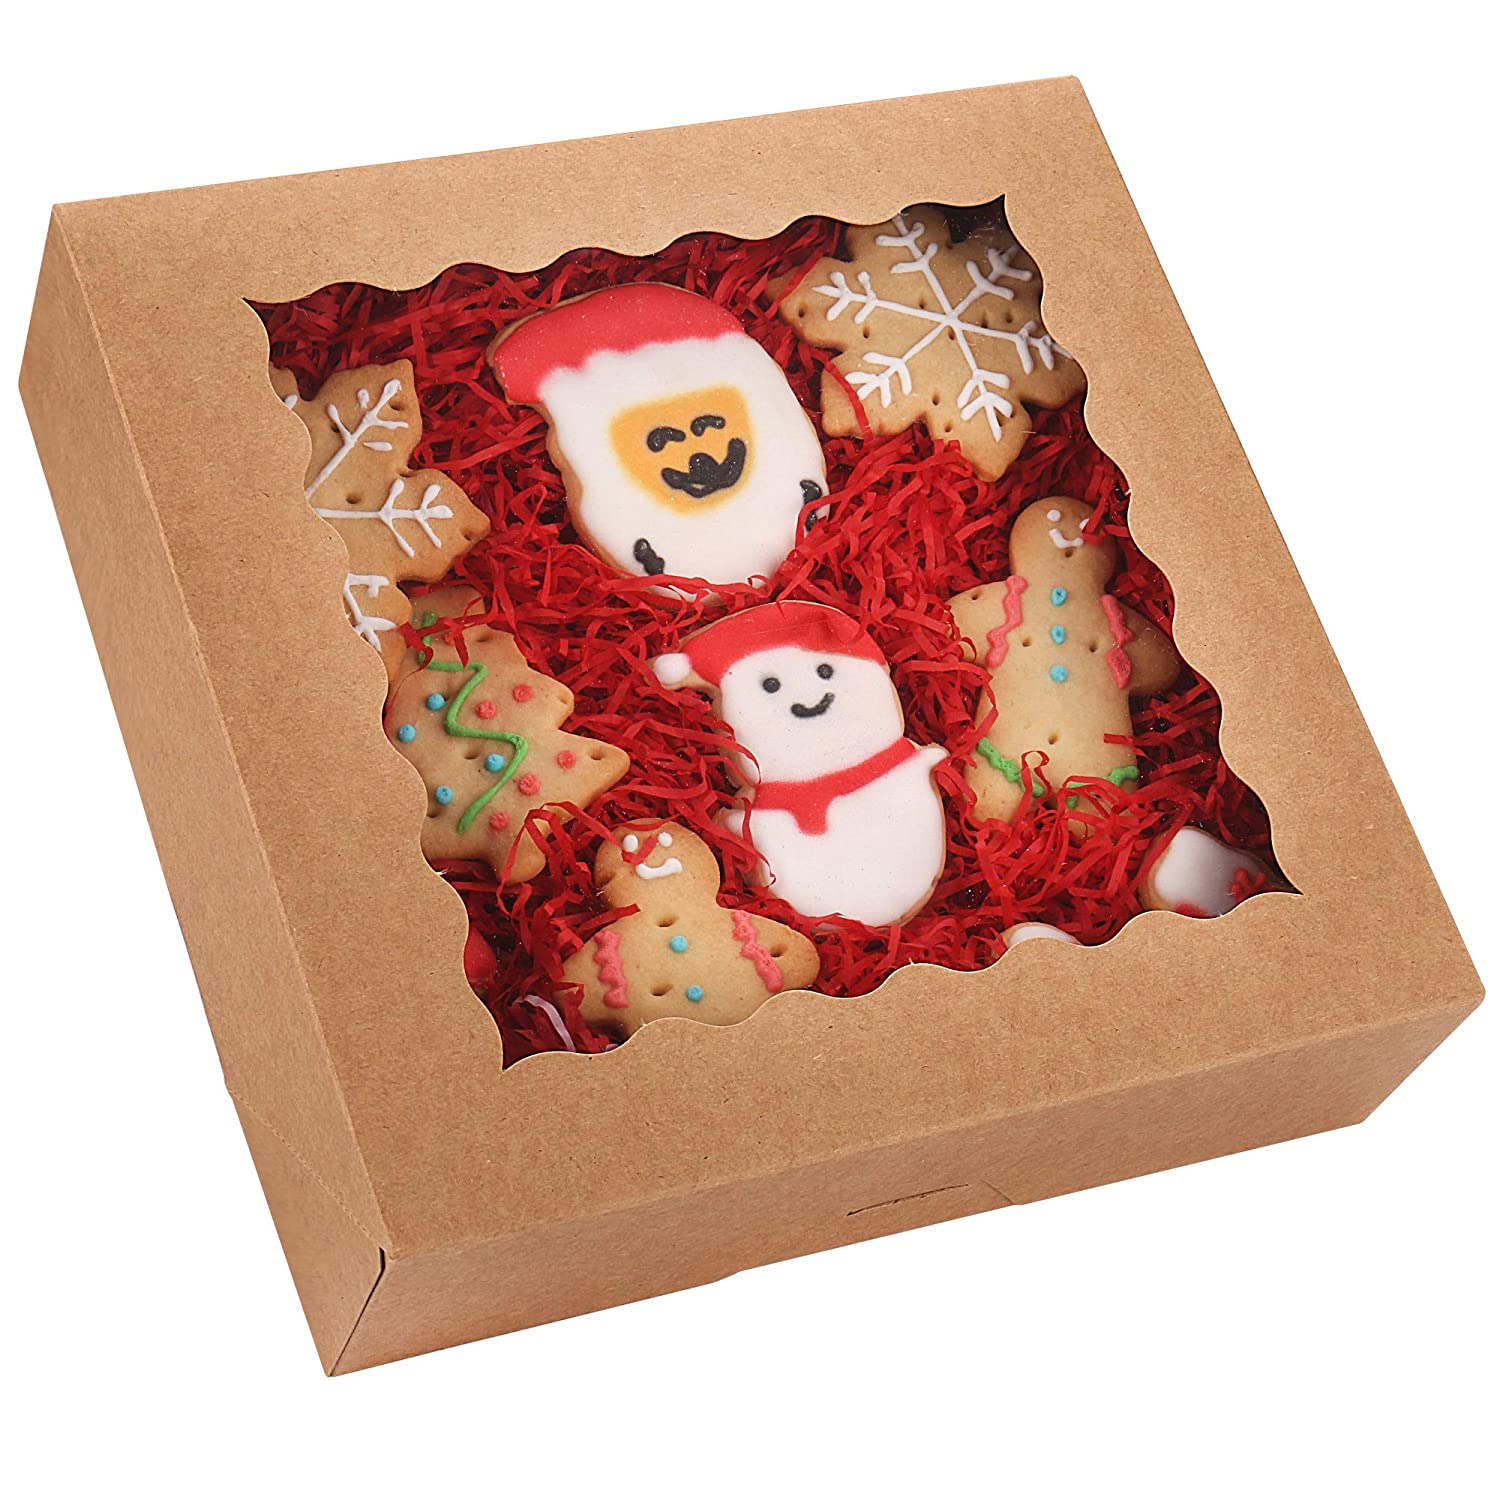 """20-Pack Pie Boxes with Window, 9"""" x 9"""" x 2.5"""", Brown Cookie Boxes, Kraft Bakery Boxes for Muffins, Donuts and Pastries"""